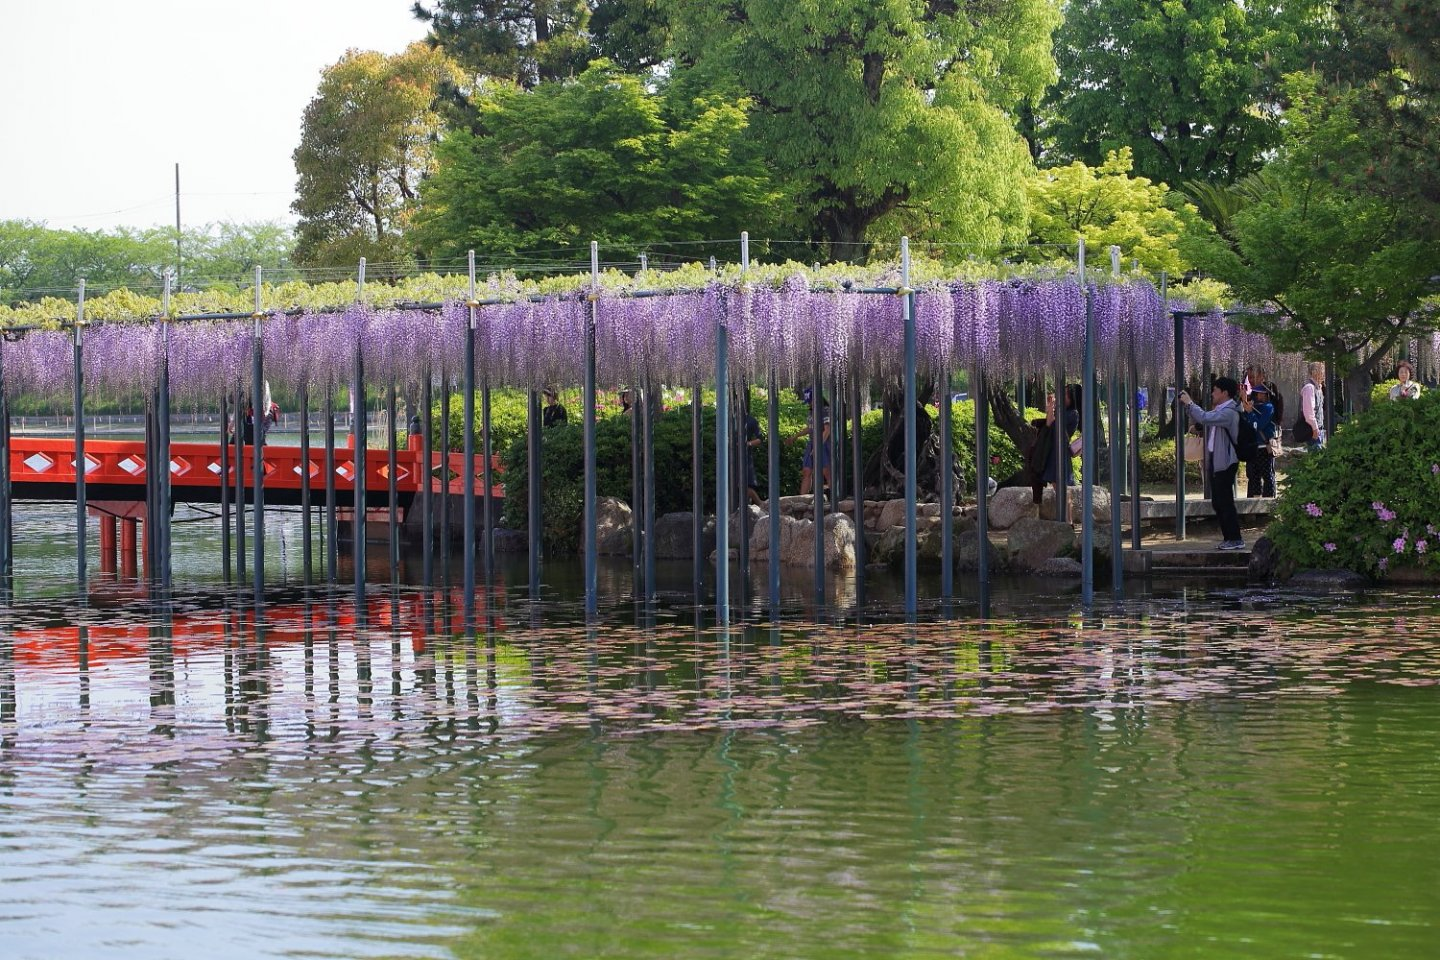 A number of wisteria trellises at the event overhang the water - dreamy!